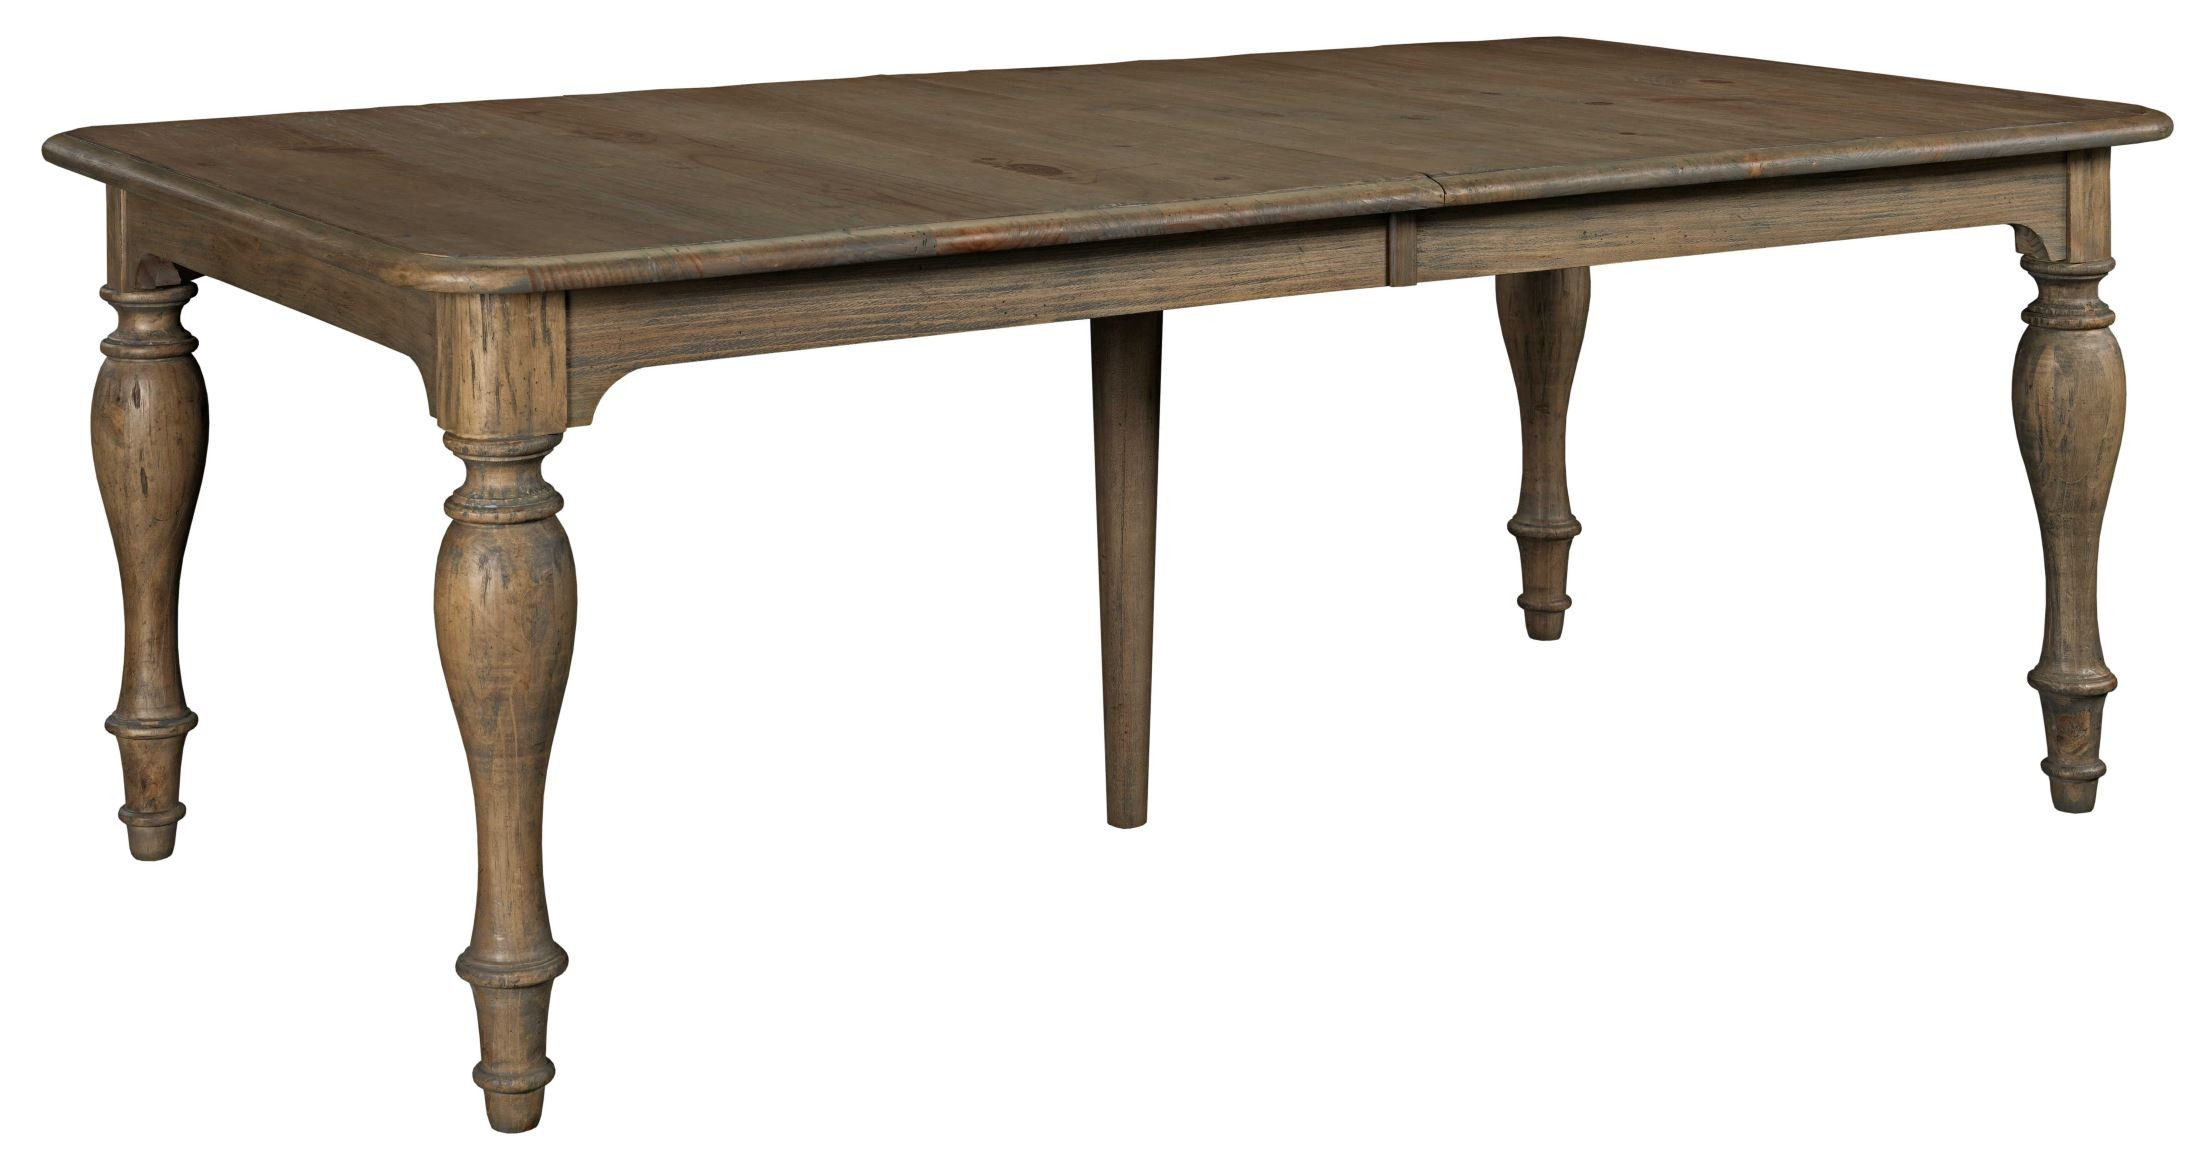 Weatherford Heather Canterbury Extendable Dining Table  : 76 054 from colemanfurniture.com size 2200 x 1167 jpeg 192kB